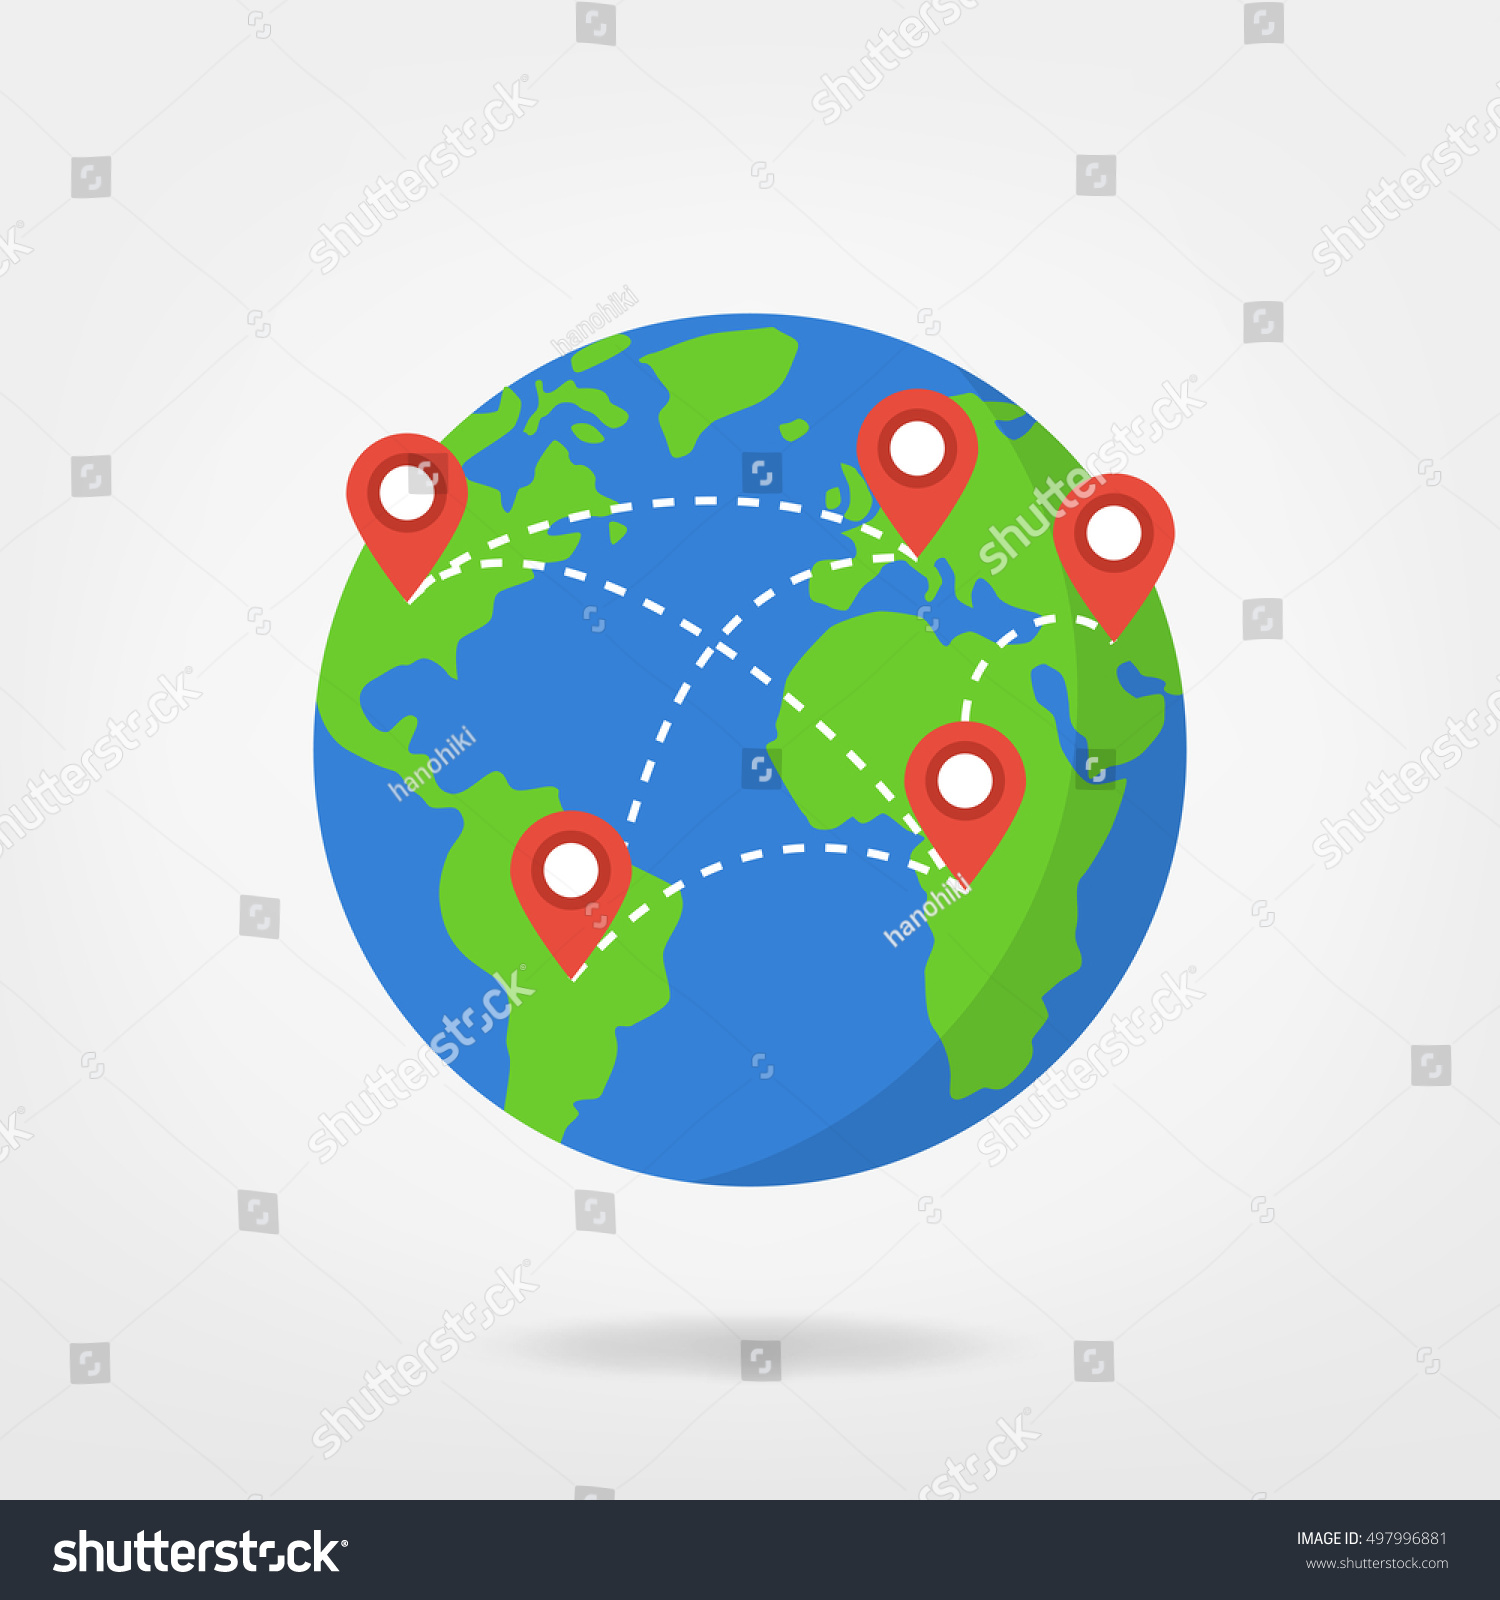 Pin points on world map travel vectores en stock 497996881 pin points on world map travel concept illustration location marker on globe vector gumiabroncs Images